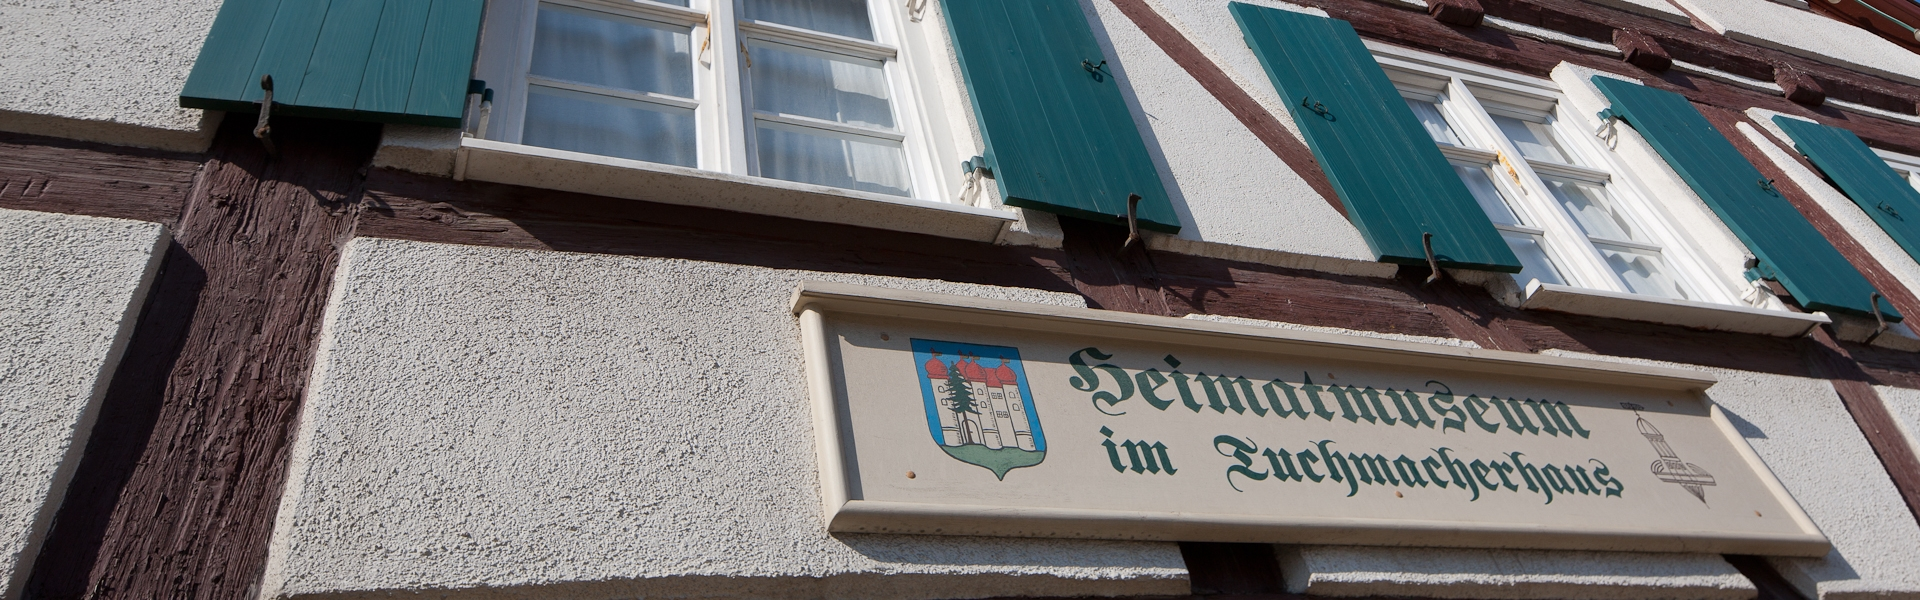 Header Thannhausen 001